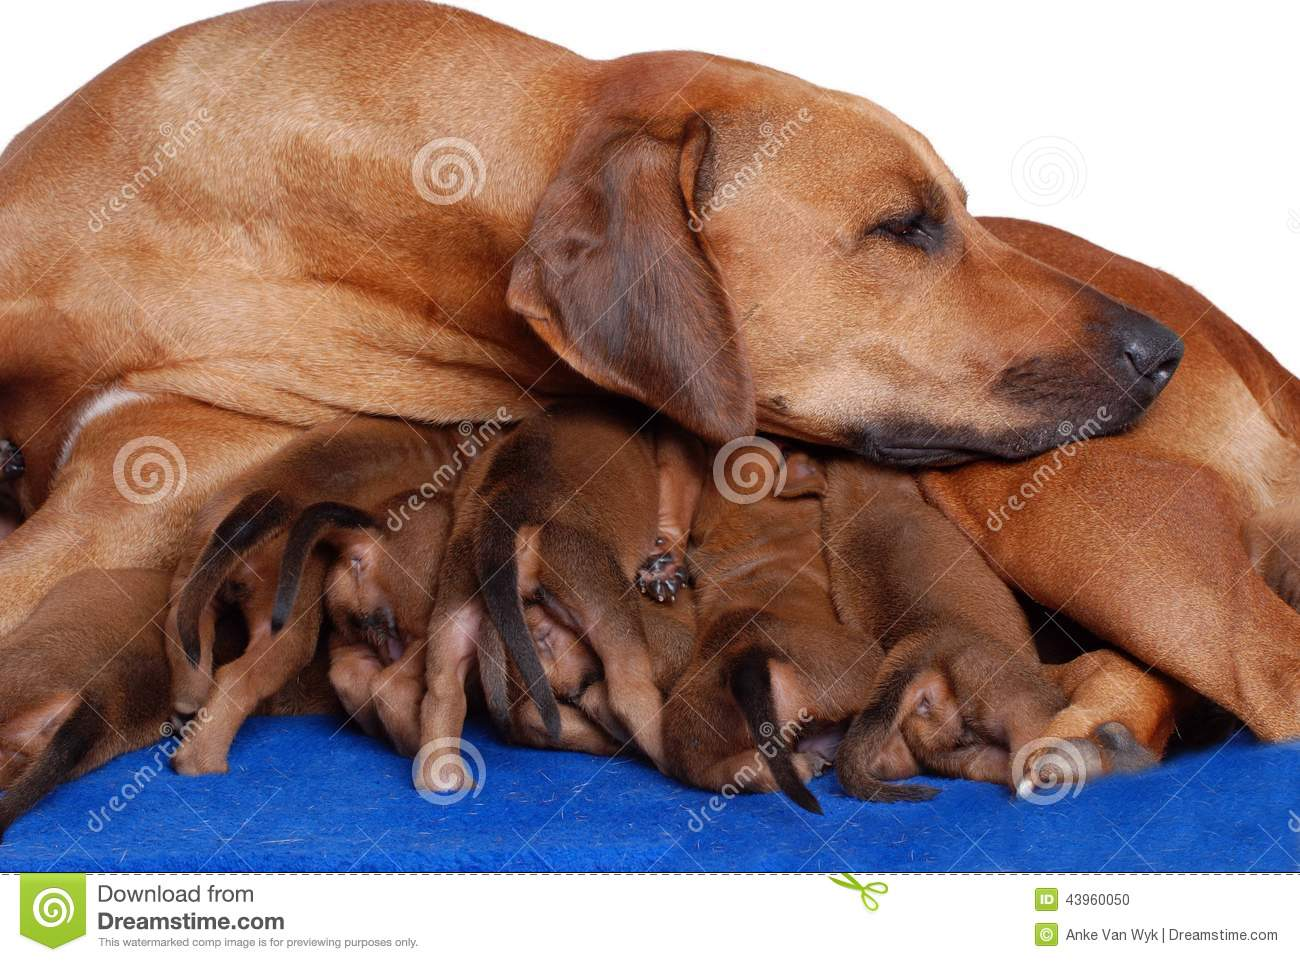 Ilunga Adell Wallpapers Dam with puppies Dog with puppies